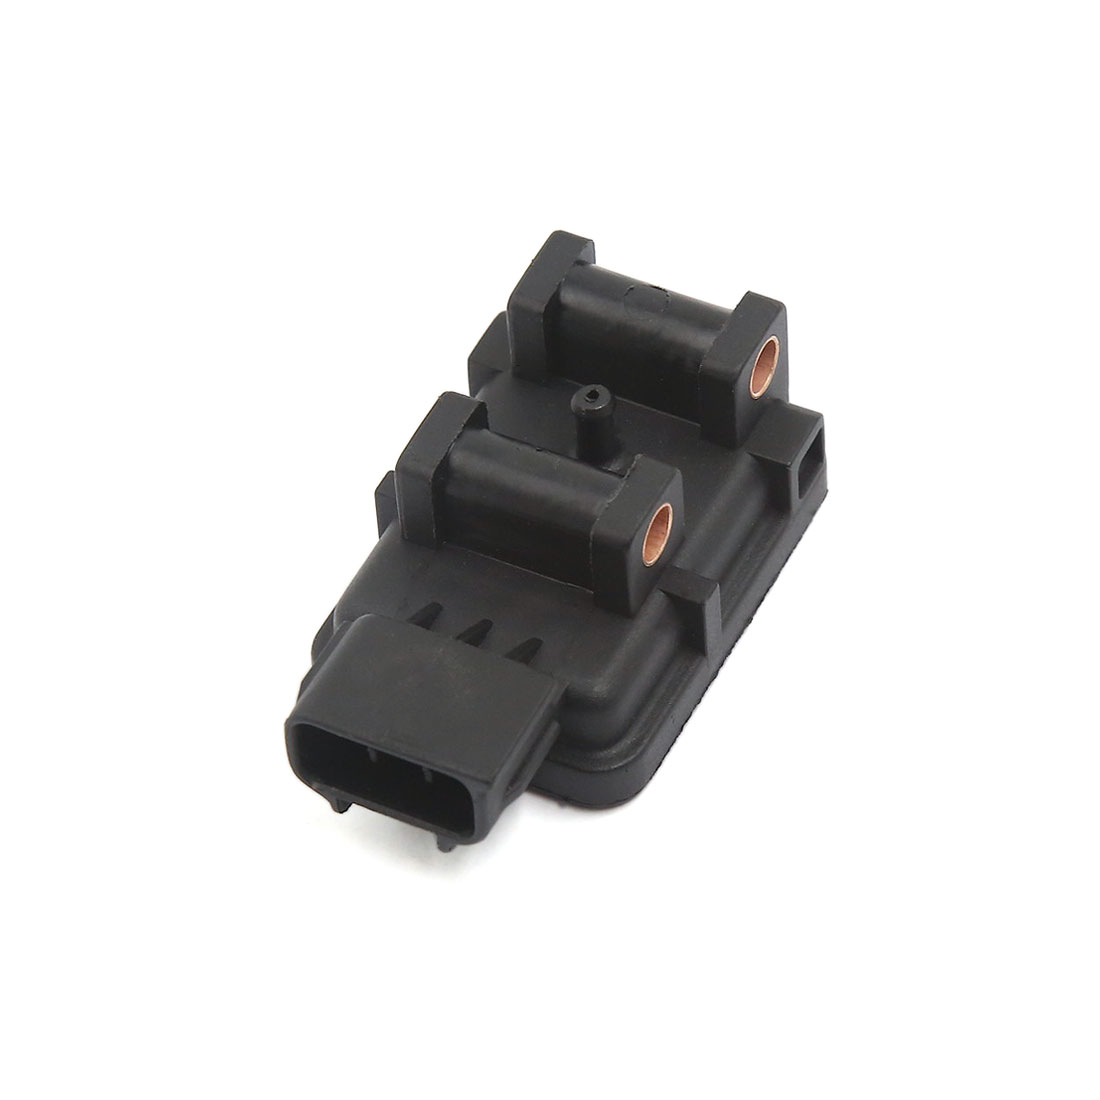 56029405 Manifold Absolute Pressure Sensor MAP Fit for Dodge Ram Jeep